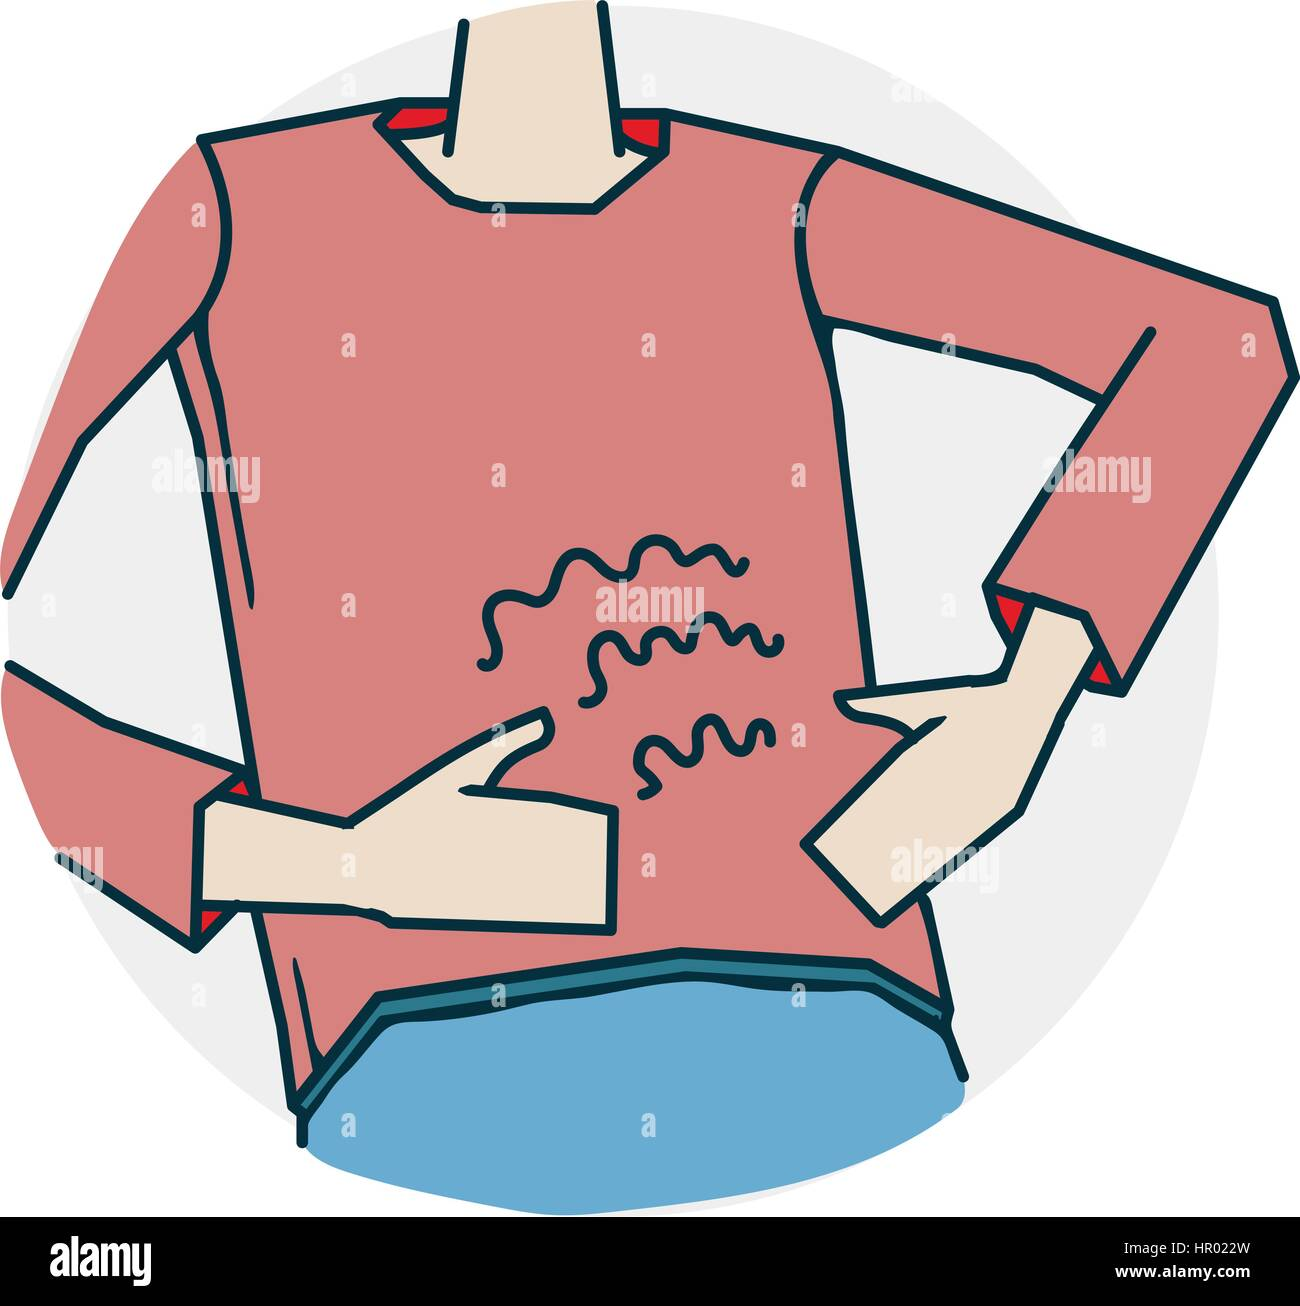 hight resolution of abdominal pain or indigestion problems with hearing and deafness illustration of a funny cartoon style